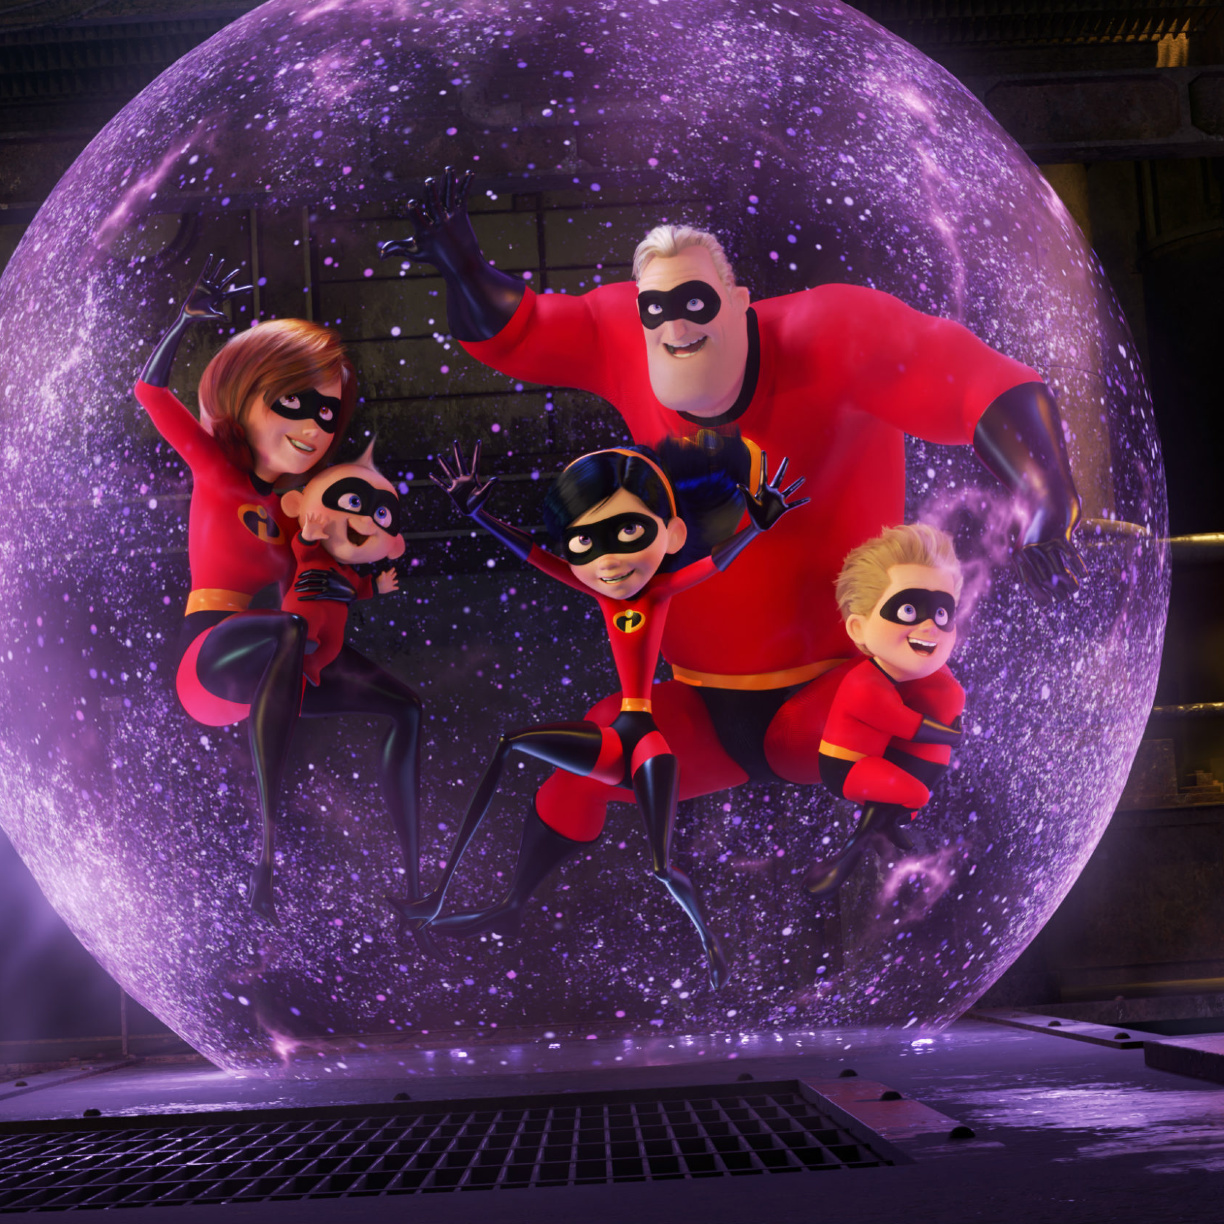 Sauth Hd Movies Download 2018 2: The Incredibles 2 Movie 2018, HD 4K Wallpaper